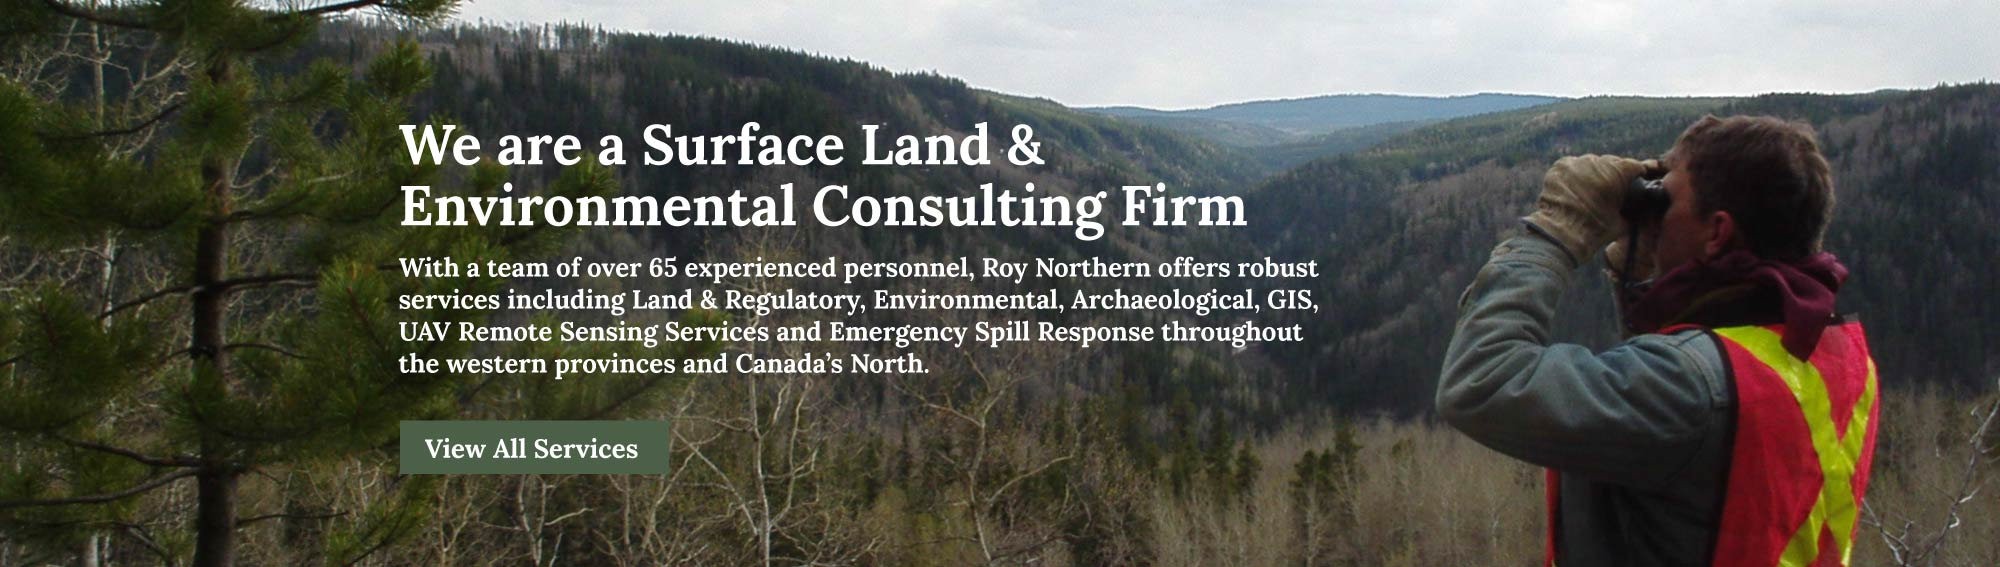 Roy Northern: Surface Land & Environmental Consulting Firm